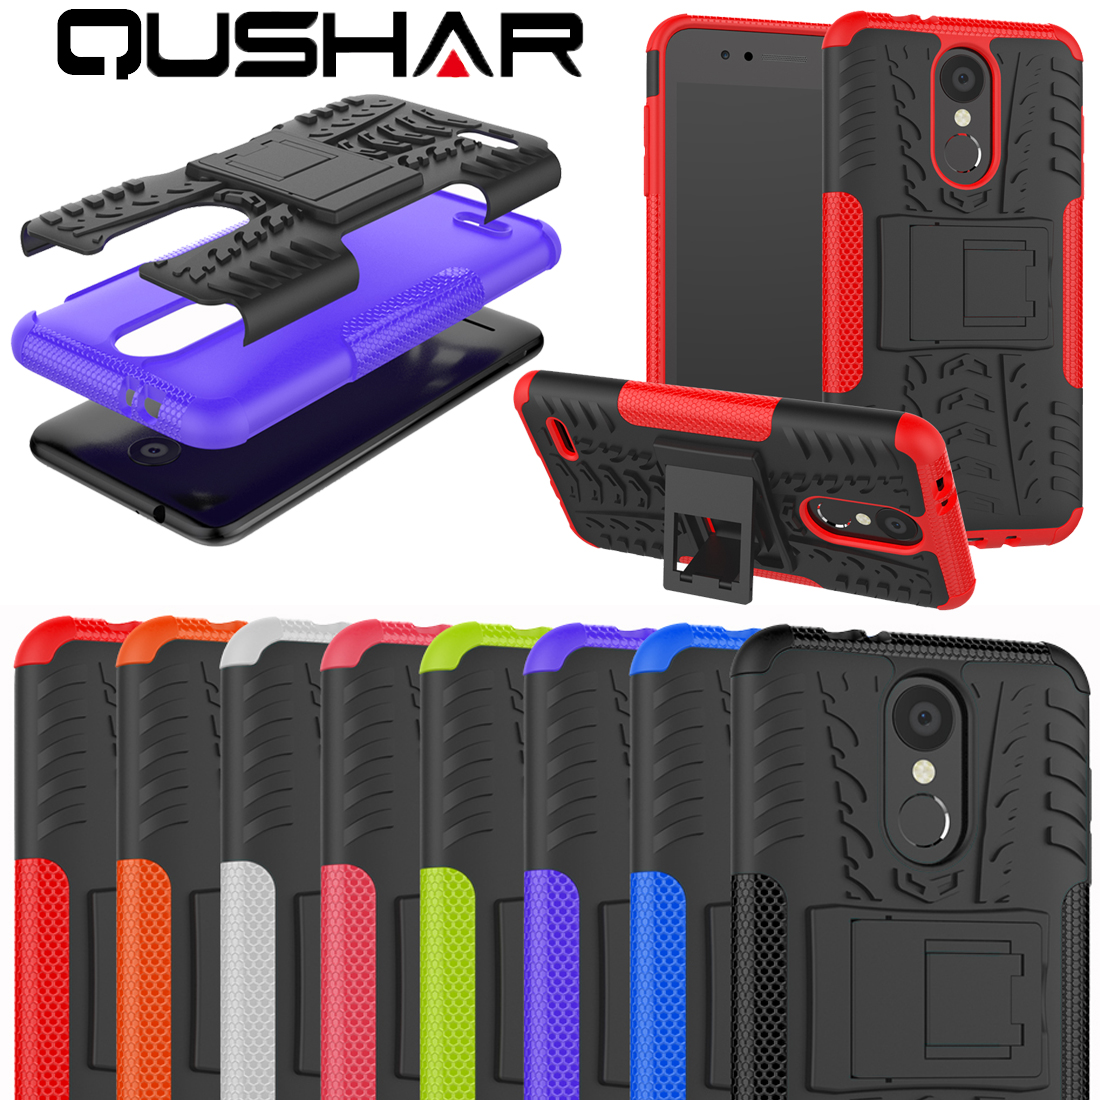 Cool Armor Phone Cover Case For LG K8 K9 K10 V30 V20 G4 G6 K4 X Power Style Tires Stand Soft TPU Hard PC 2 in 1 Phone Shell Red